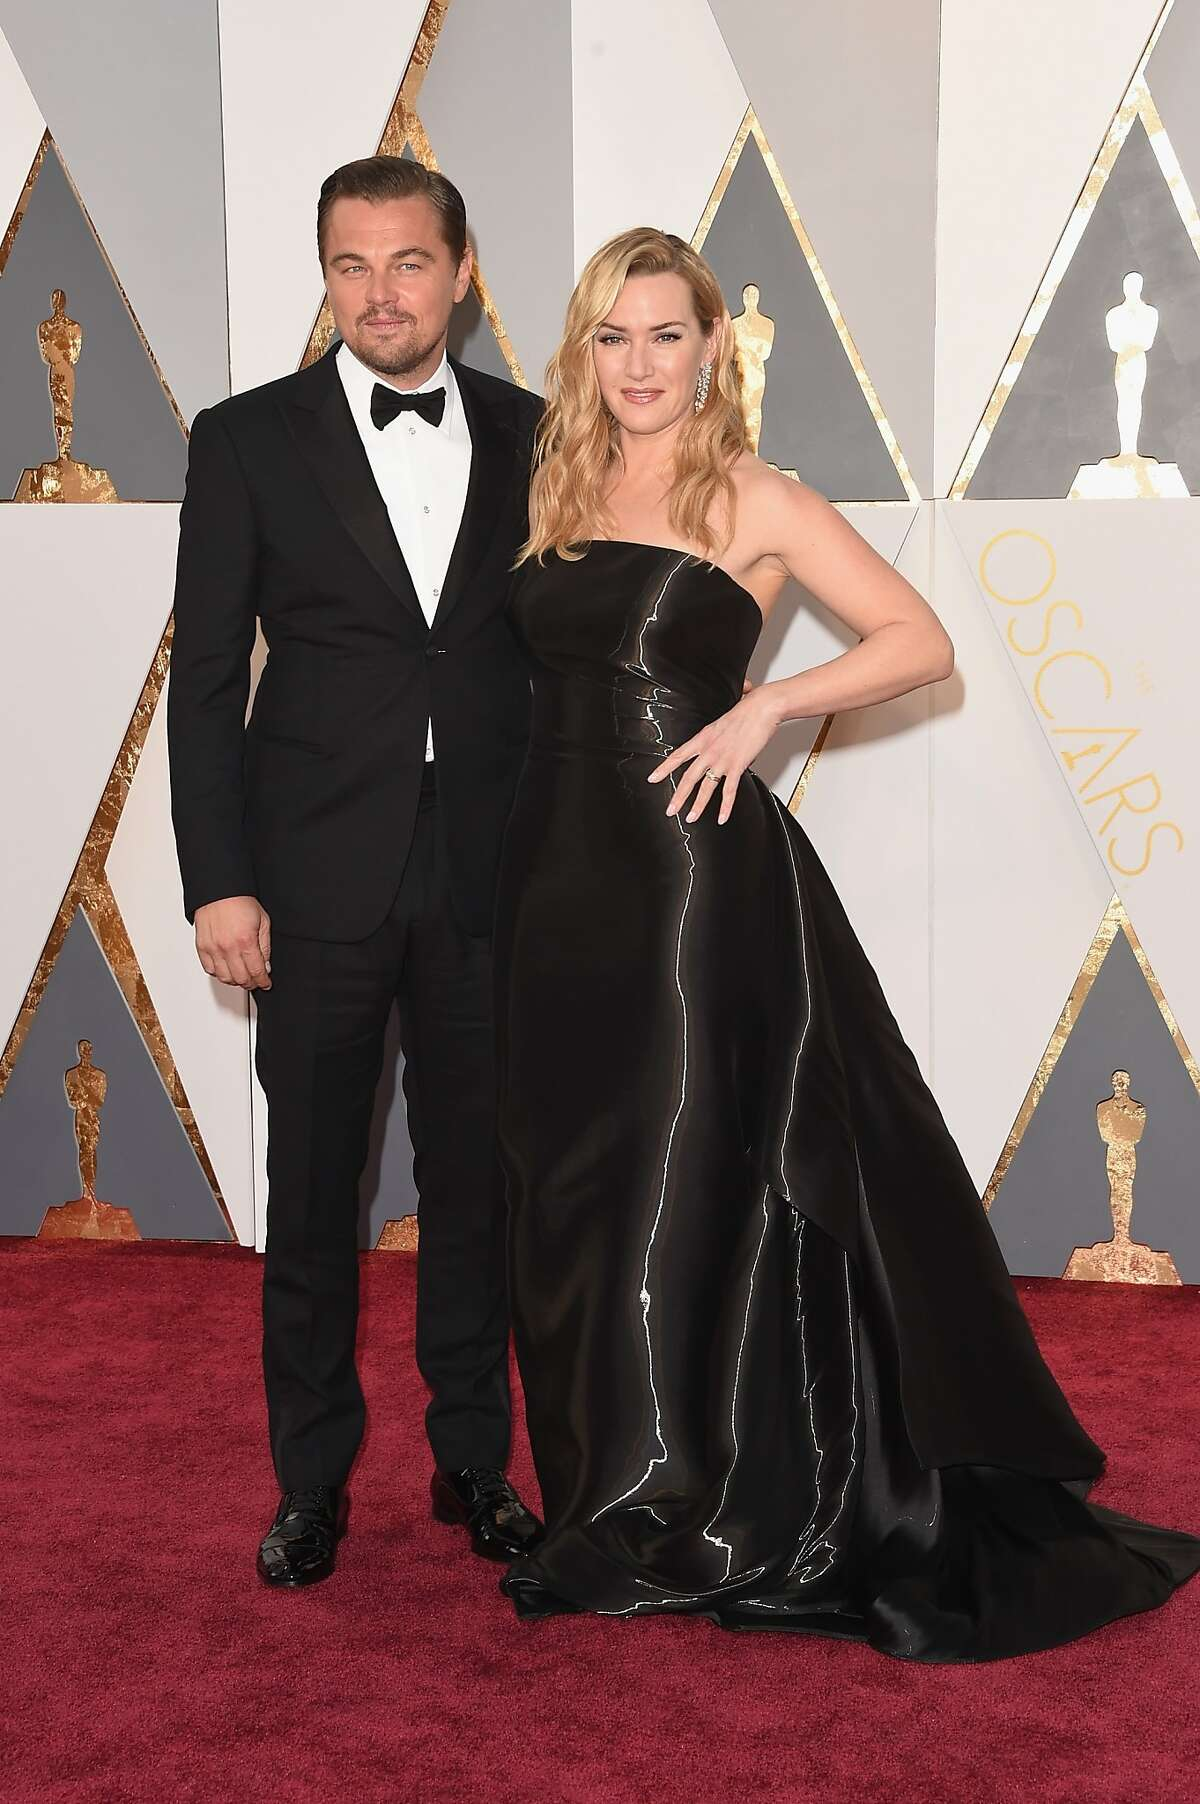 Actors Leonardo DiCaprio (L) and Kate Winslet attend the 88th Annual Academy Awards at Hollywood & Highland Center on February 28, 2016 in Hollywood.